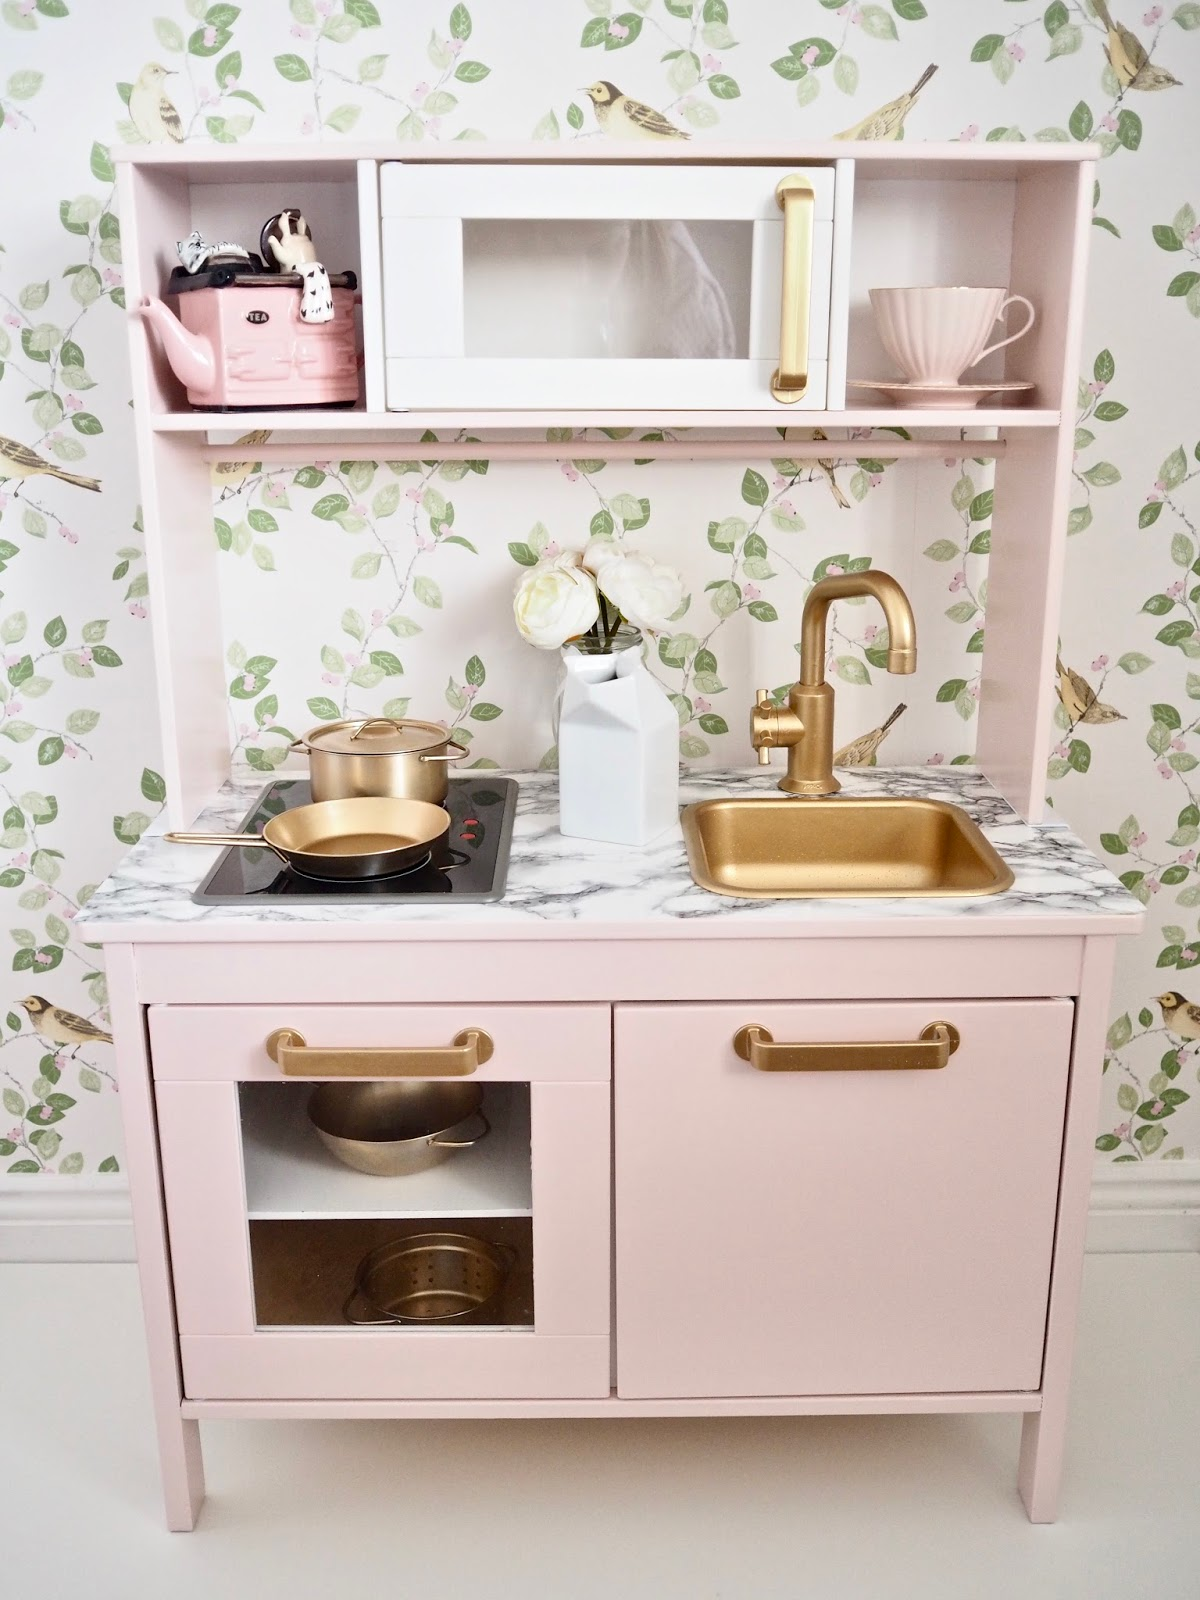 I Have Put Together A You Video Also On How Transformed My Mini Kitchen Will Make Sure To Link The At Bottom Of This Post